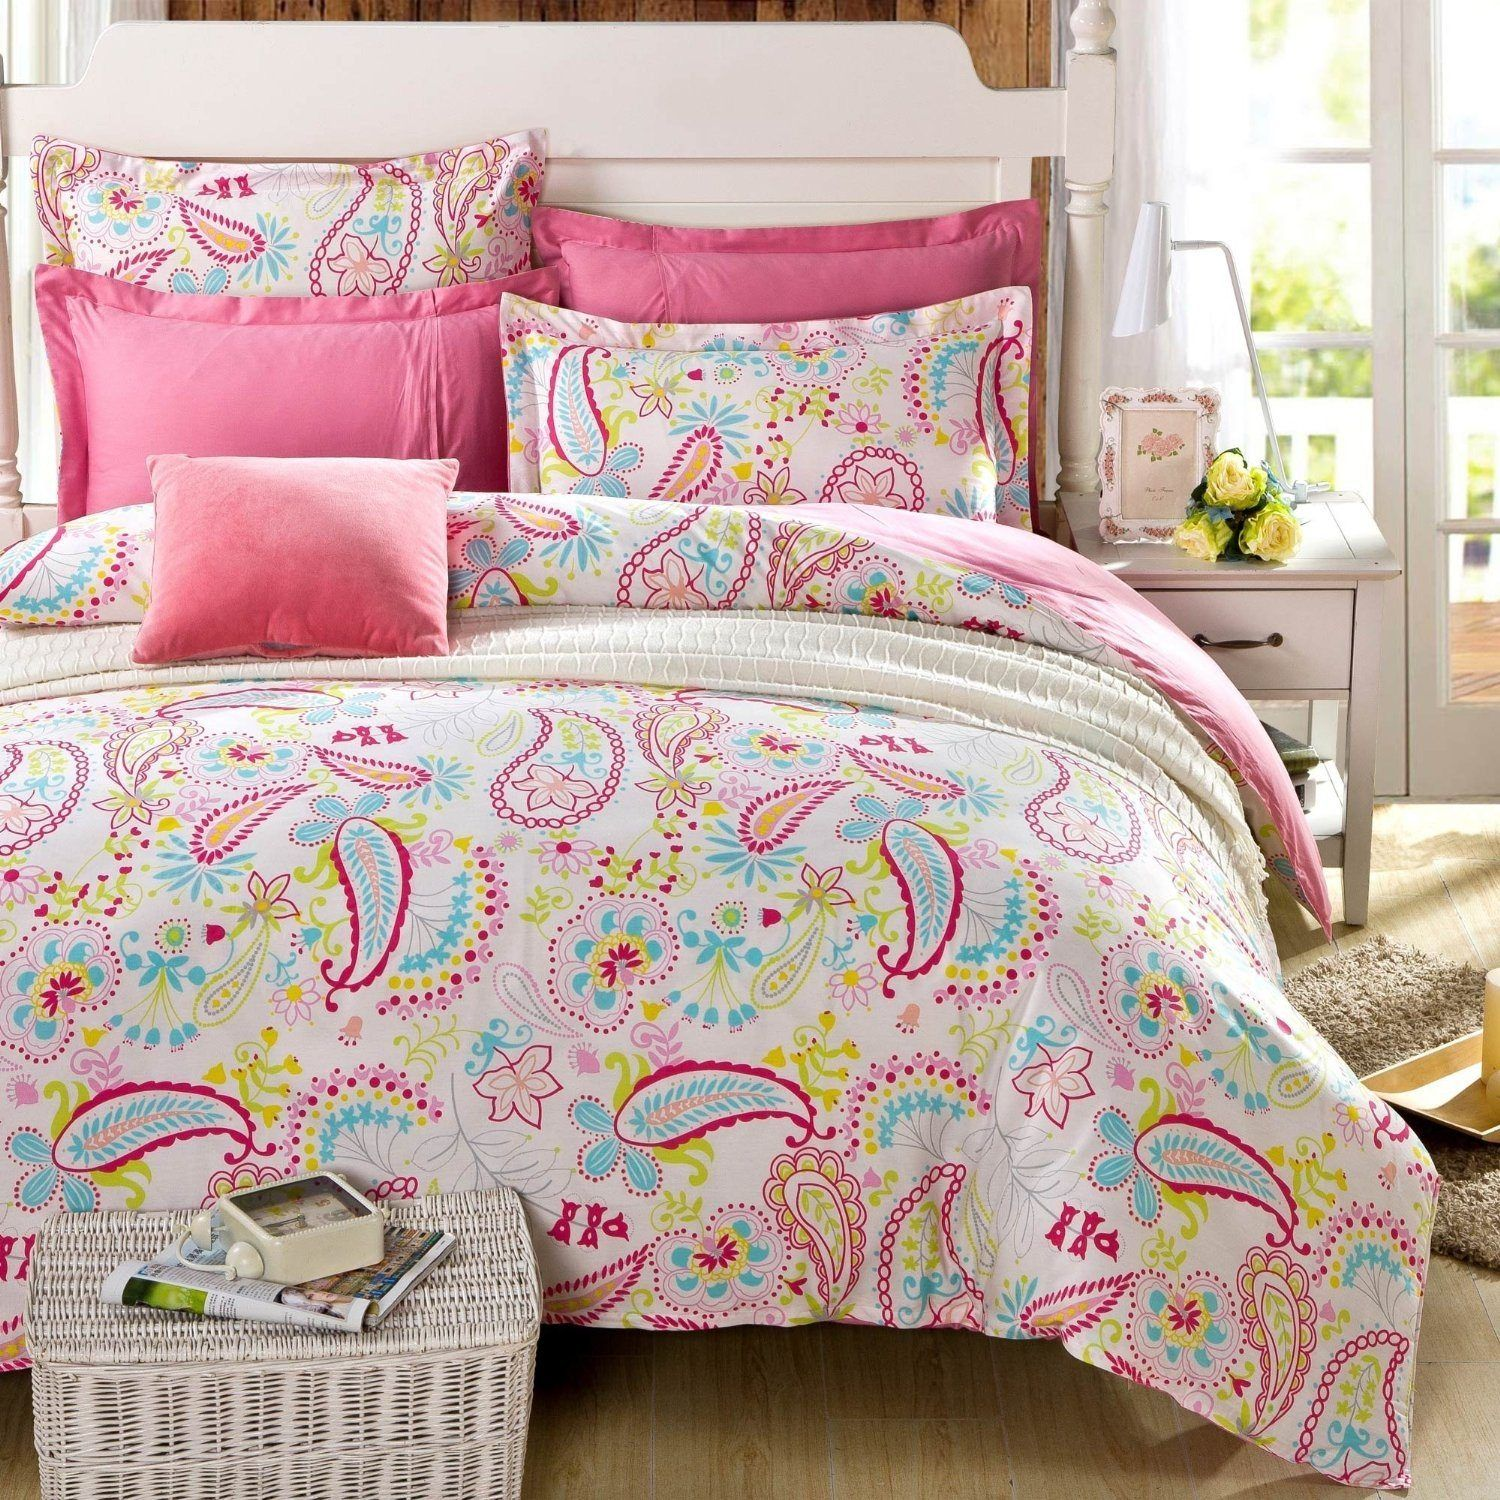 full bedding target sets emoji light of for kohls sheets daybed kids teal girls childrens twin walmart pottery girl size bed comforter teenage ikea funky barn comforters